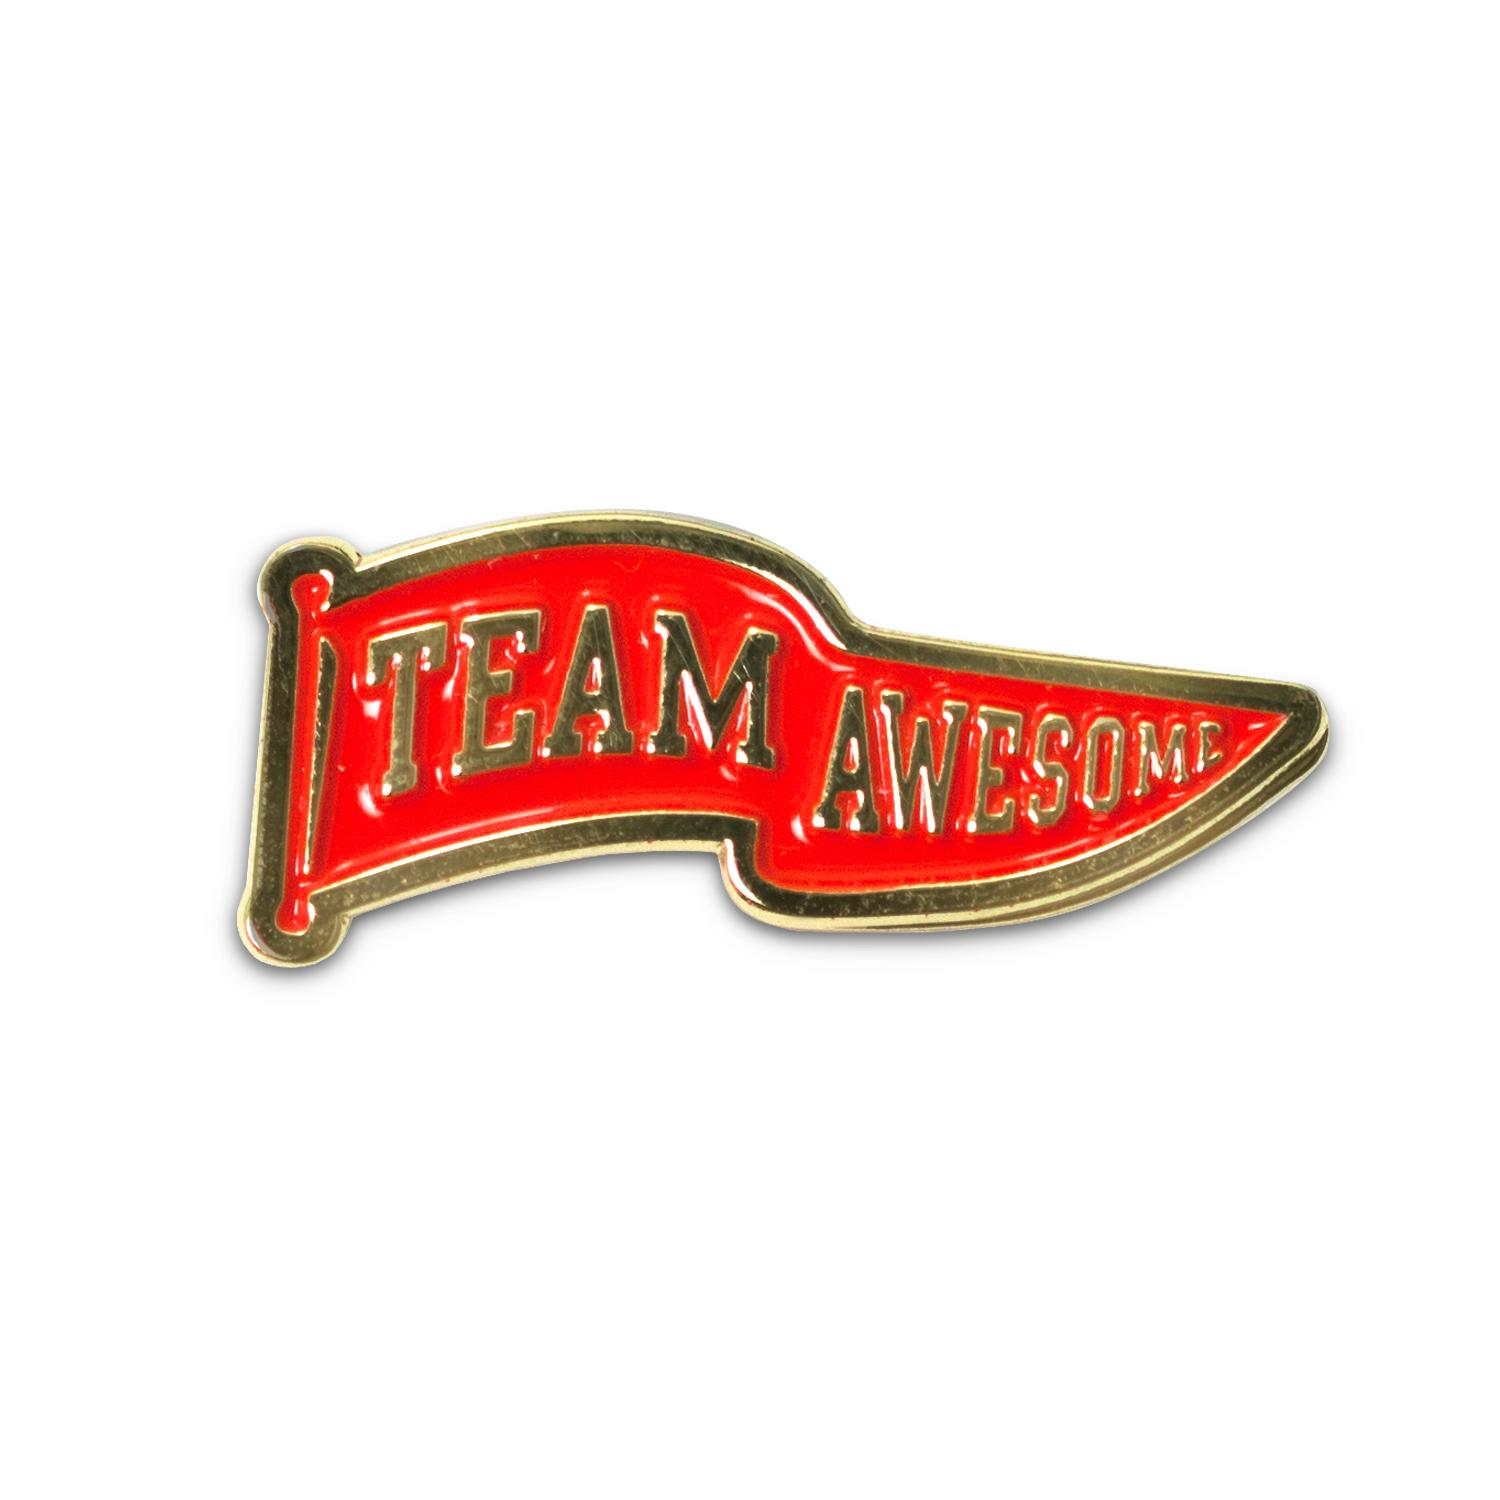 praise pins by successories appreciation pins thank you pins appreciation pins team awesome lapel pin